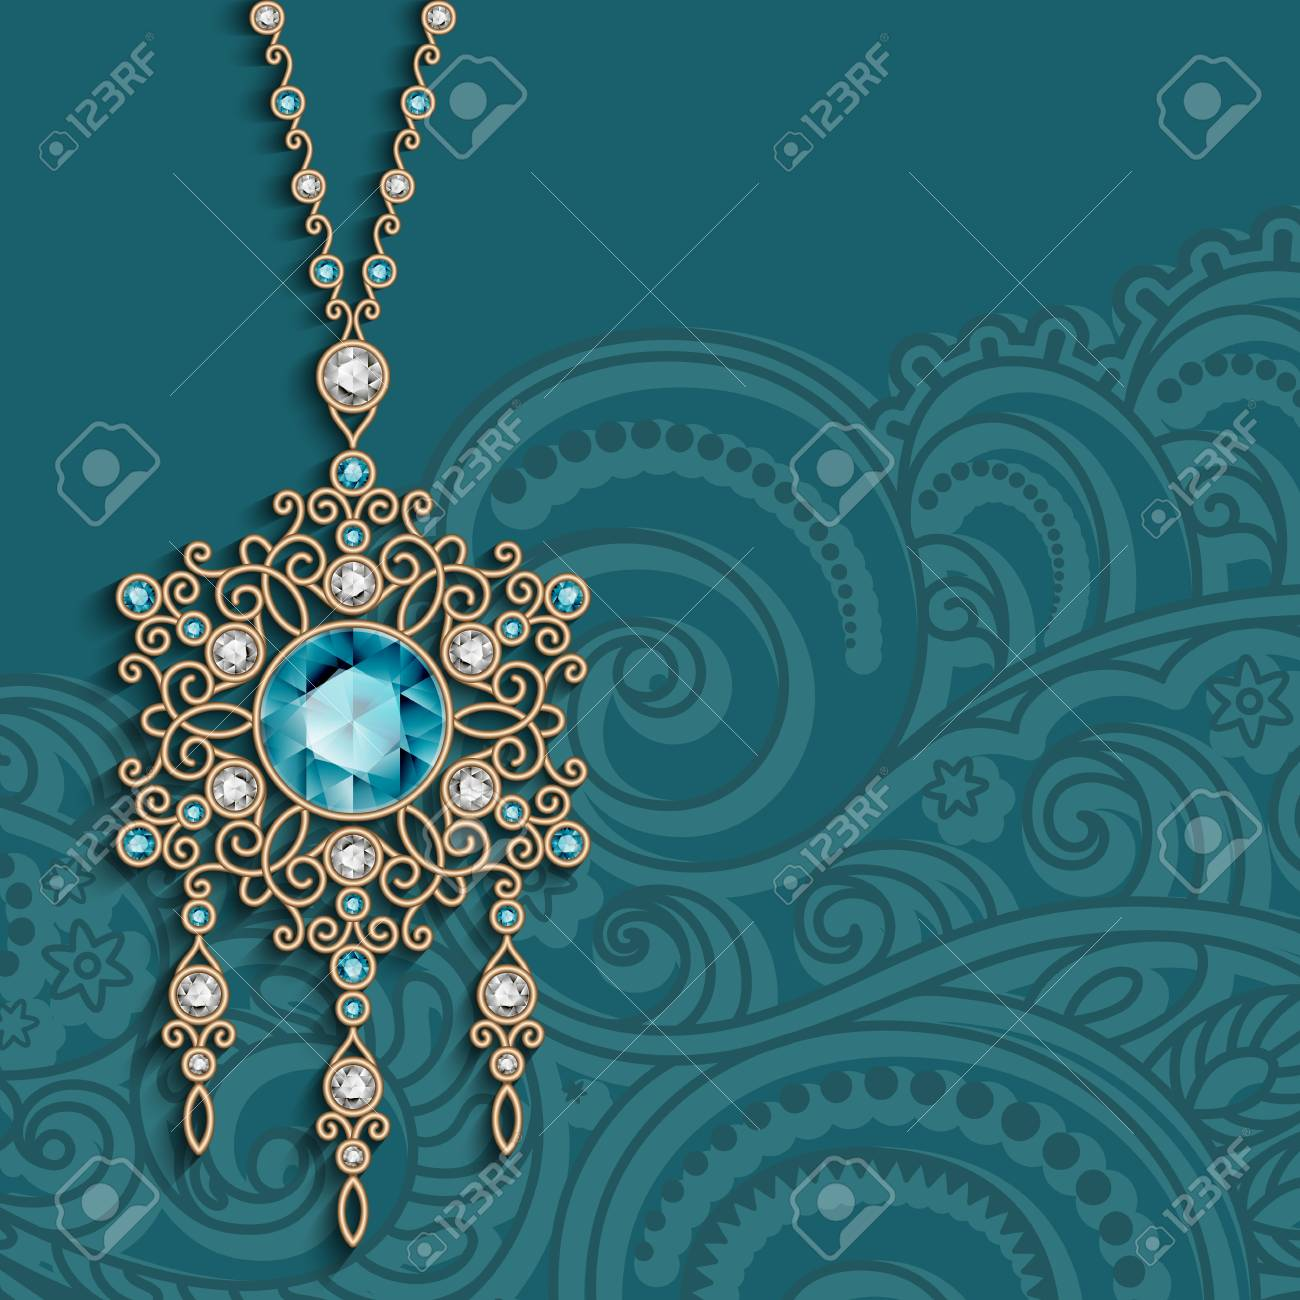 Vintage Gold Jewelry Pendant With Diamonds And Emerald Gemstones Antique Jewellery Womenâ S Decoration Elegant Greeting Card Or Invitation Template